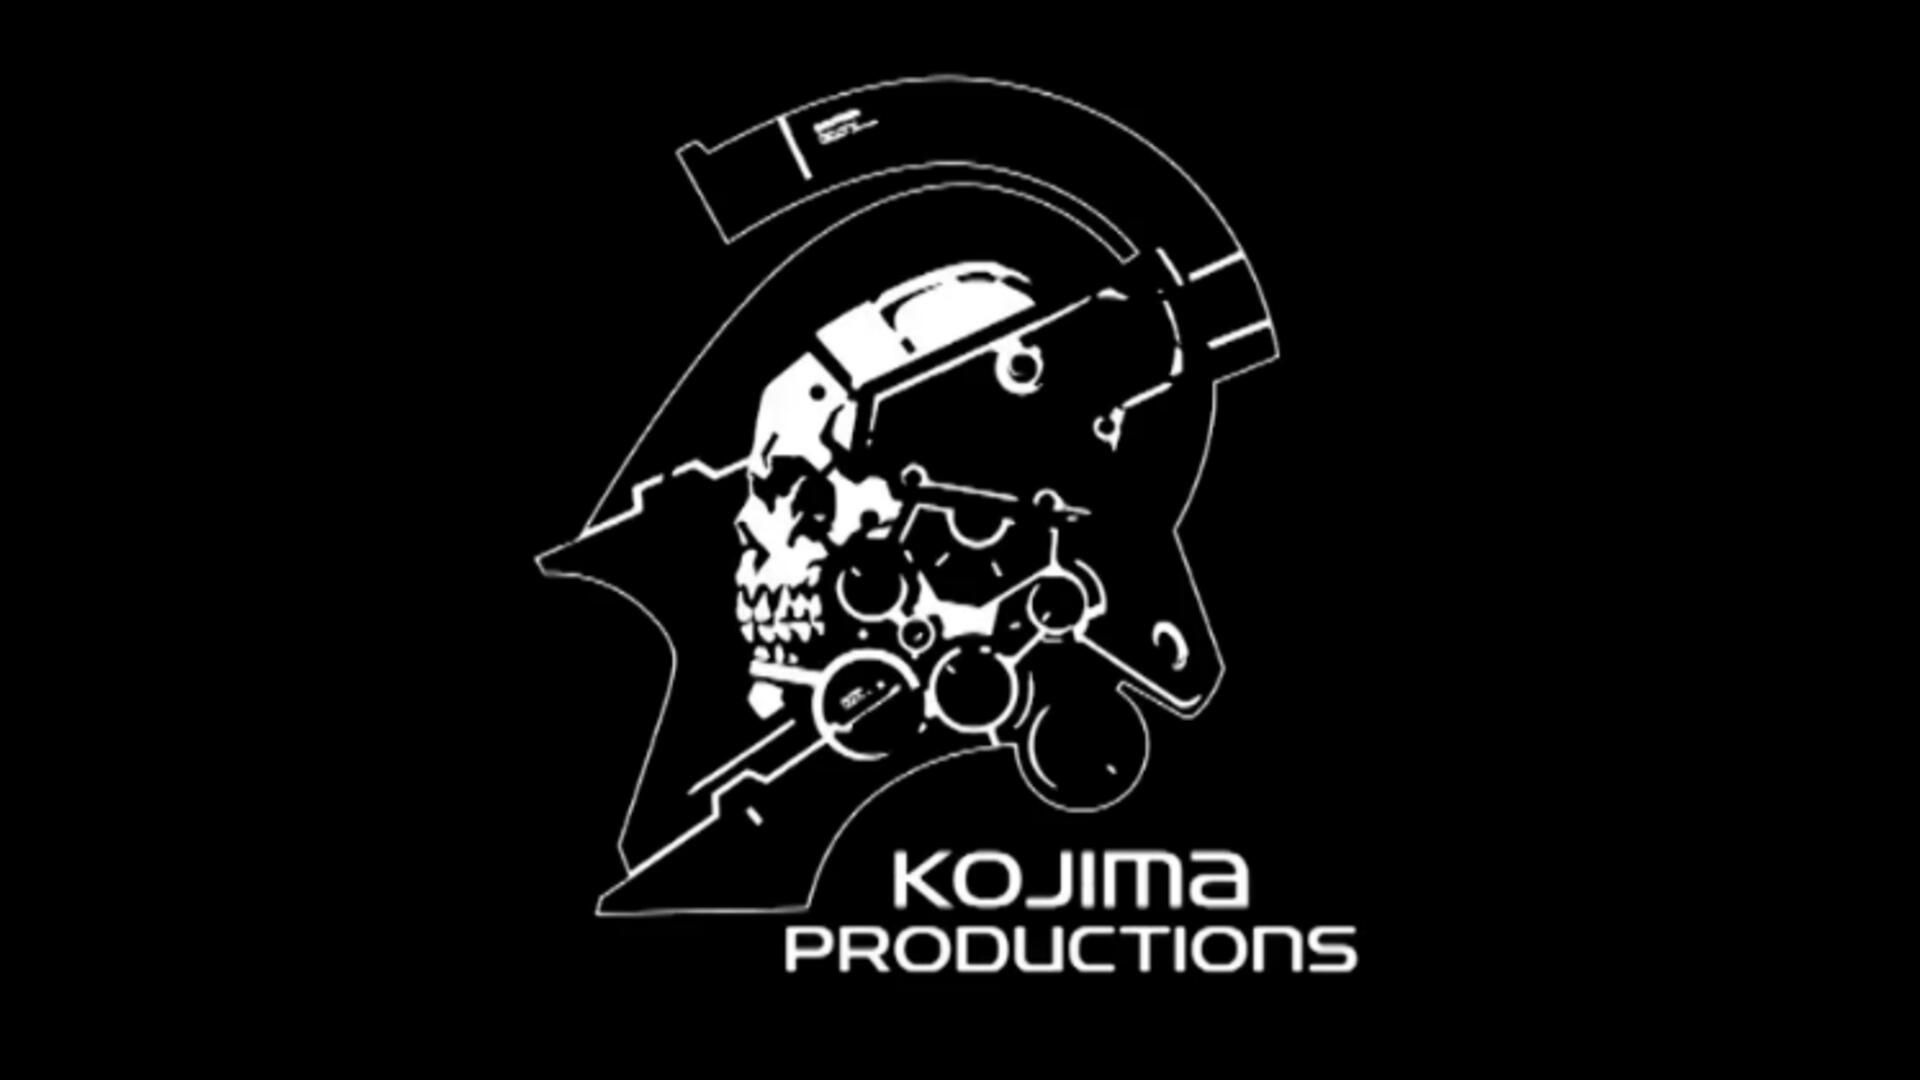 Kojima Starts Kojima Productions, New Game for PlayStation [Updated]